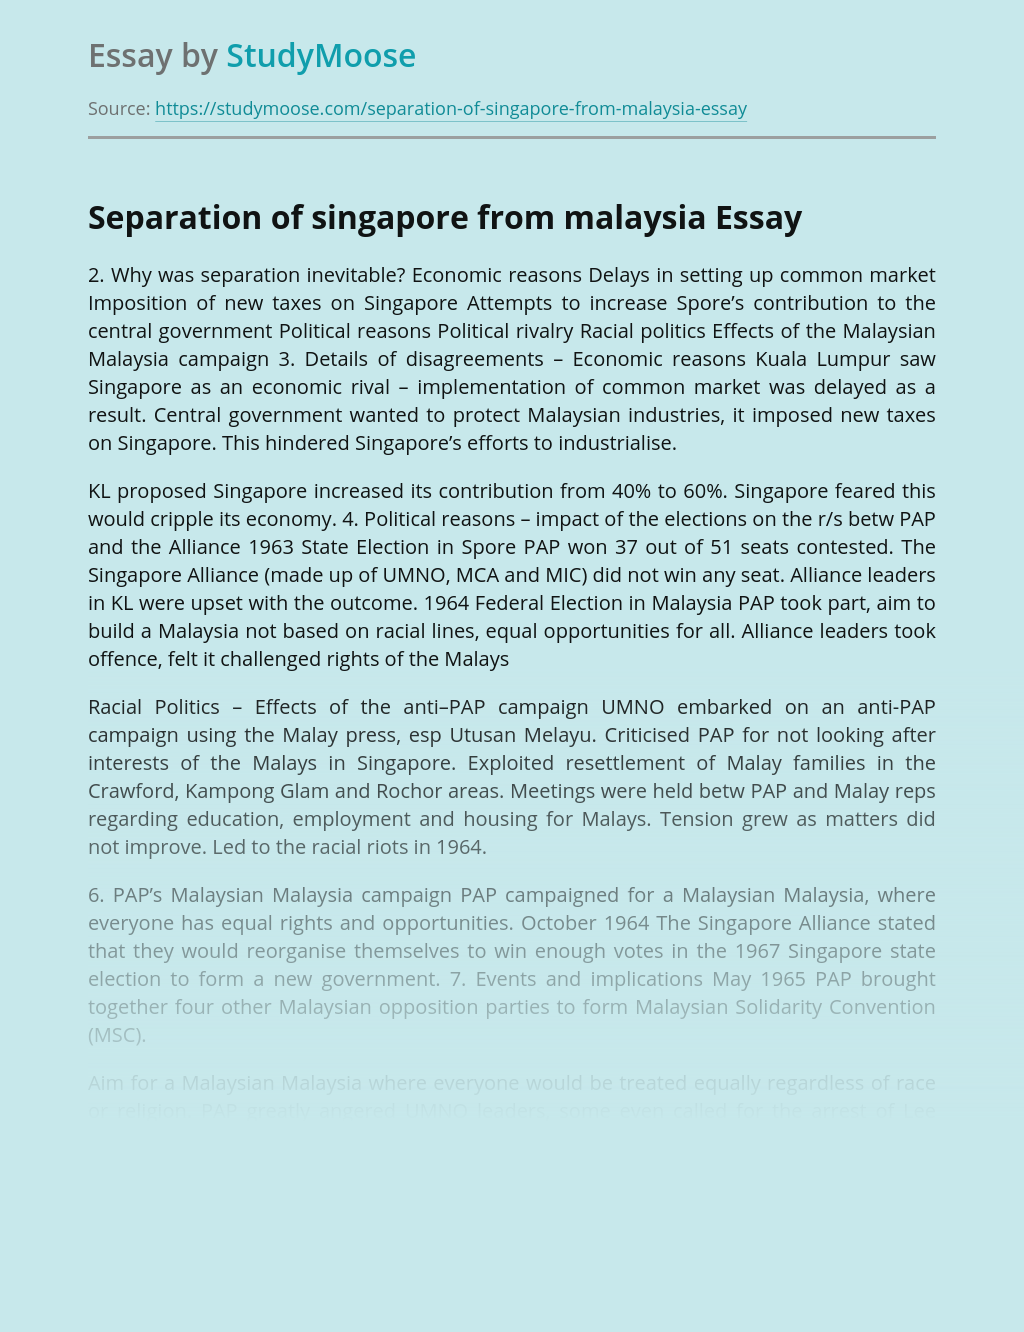 Separation of Singapore from Malaysia